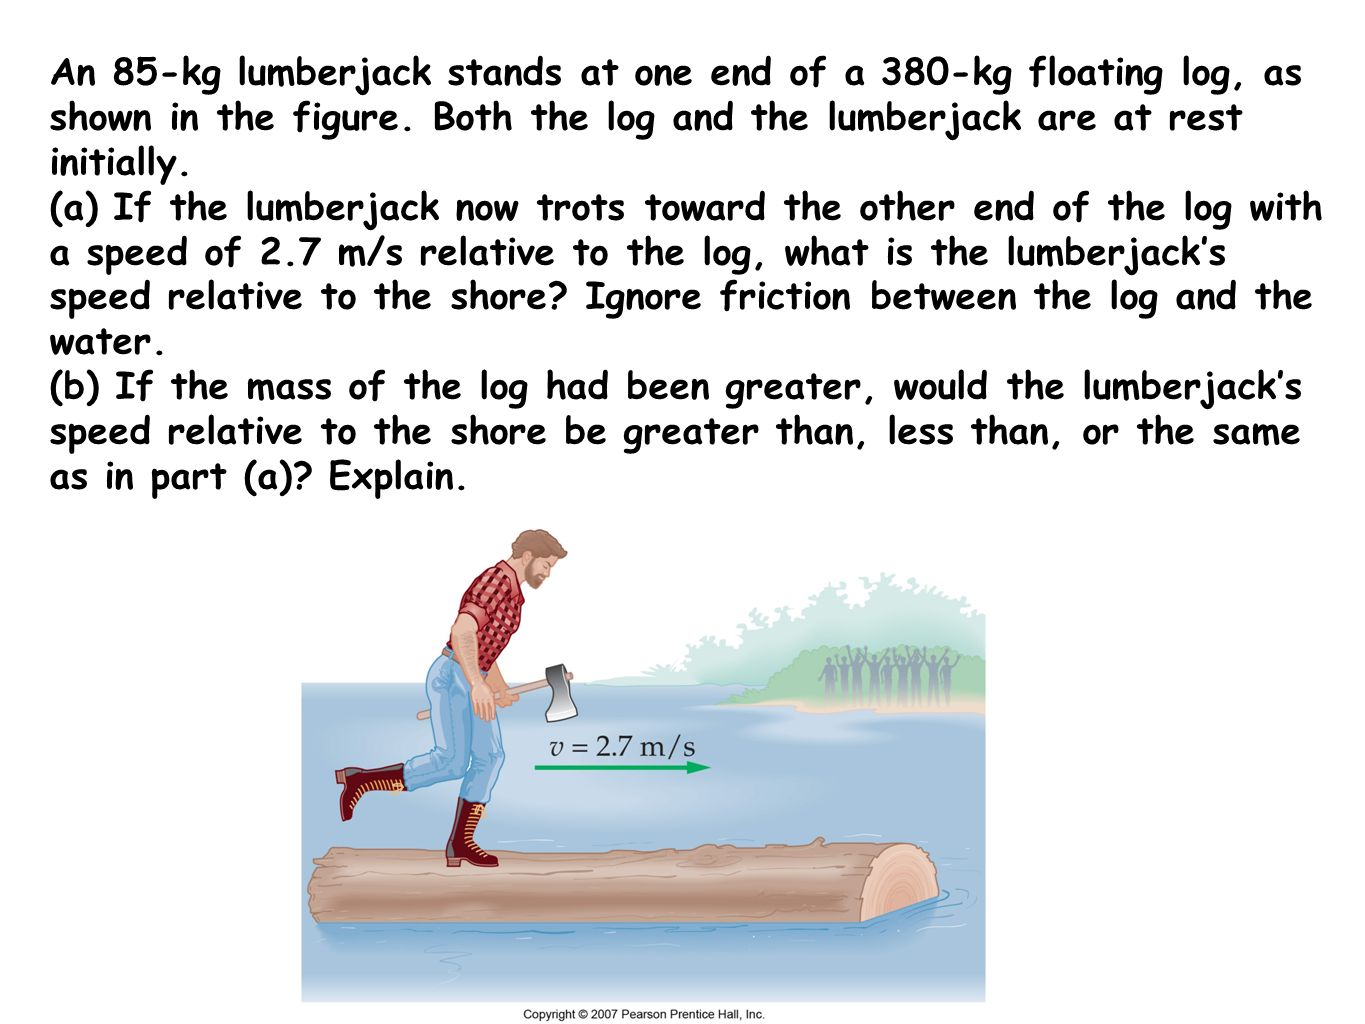 An 85-kg lumberjack stands at one end of a 380-kg floating log, as shown in the figure. Both the log and the lumberjack are at rest initially.